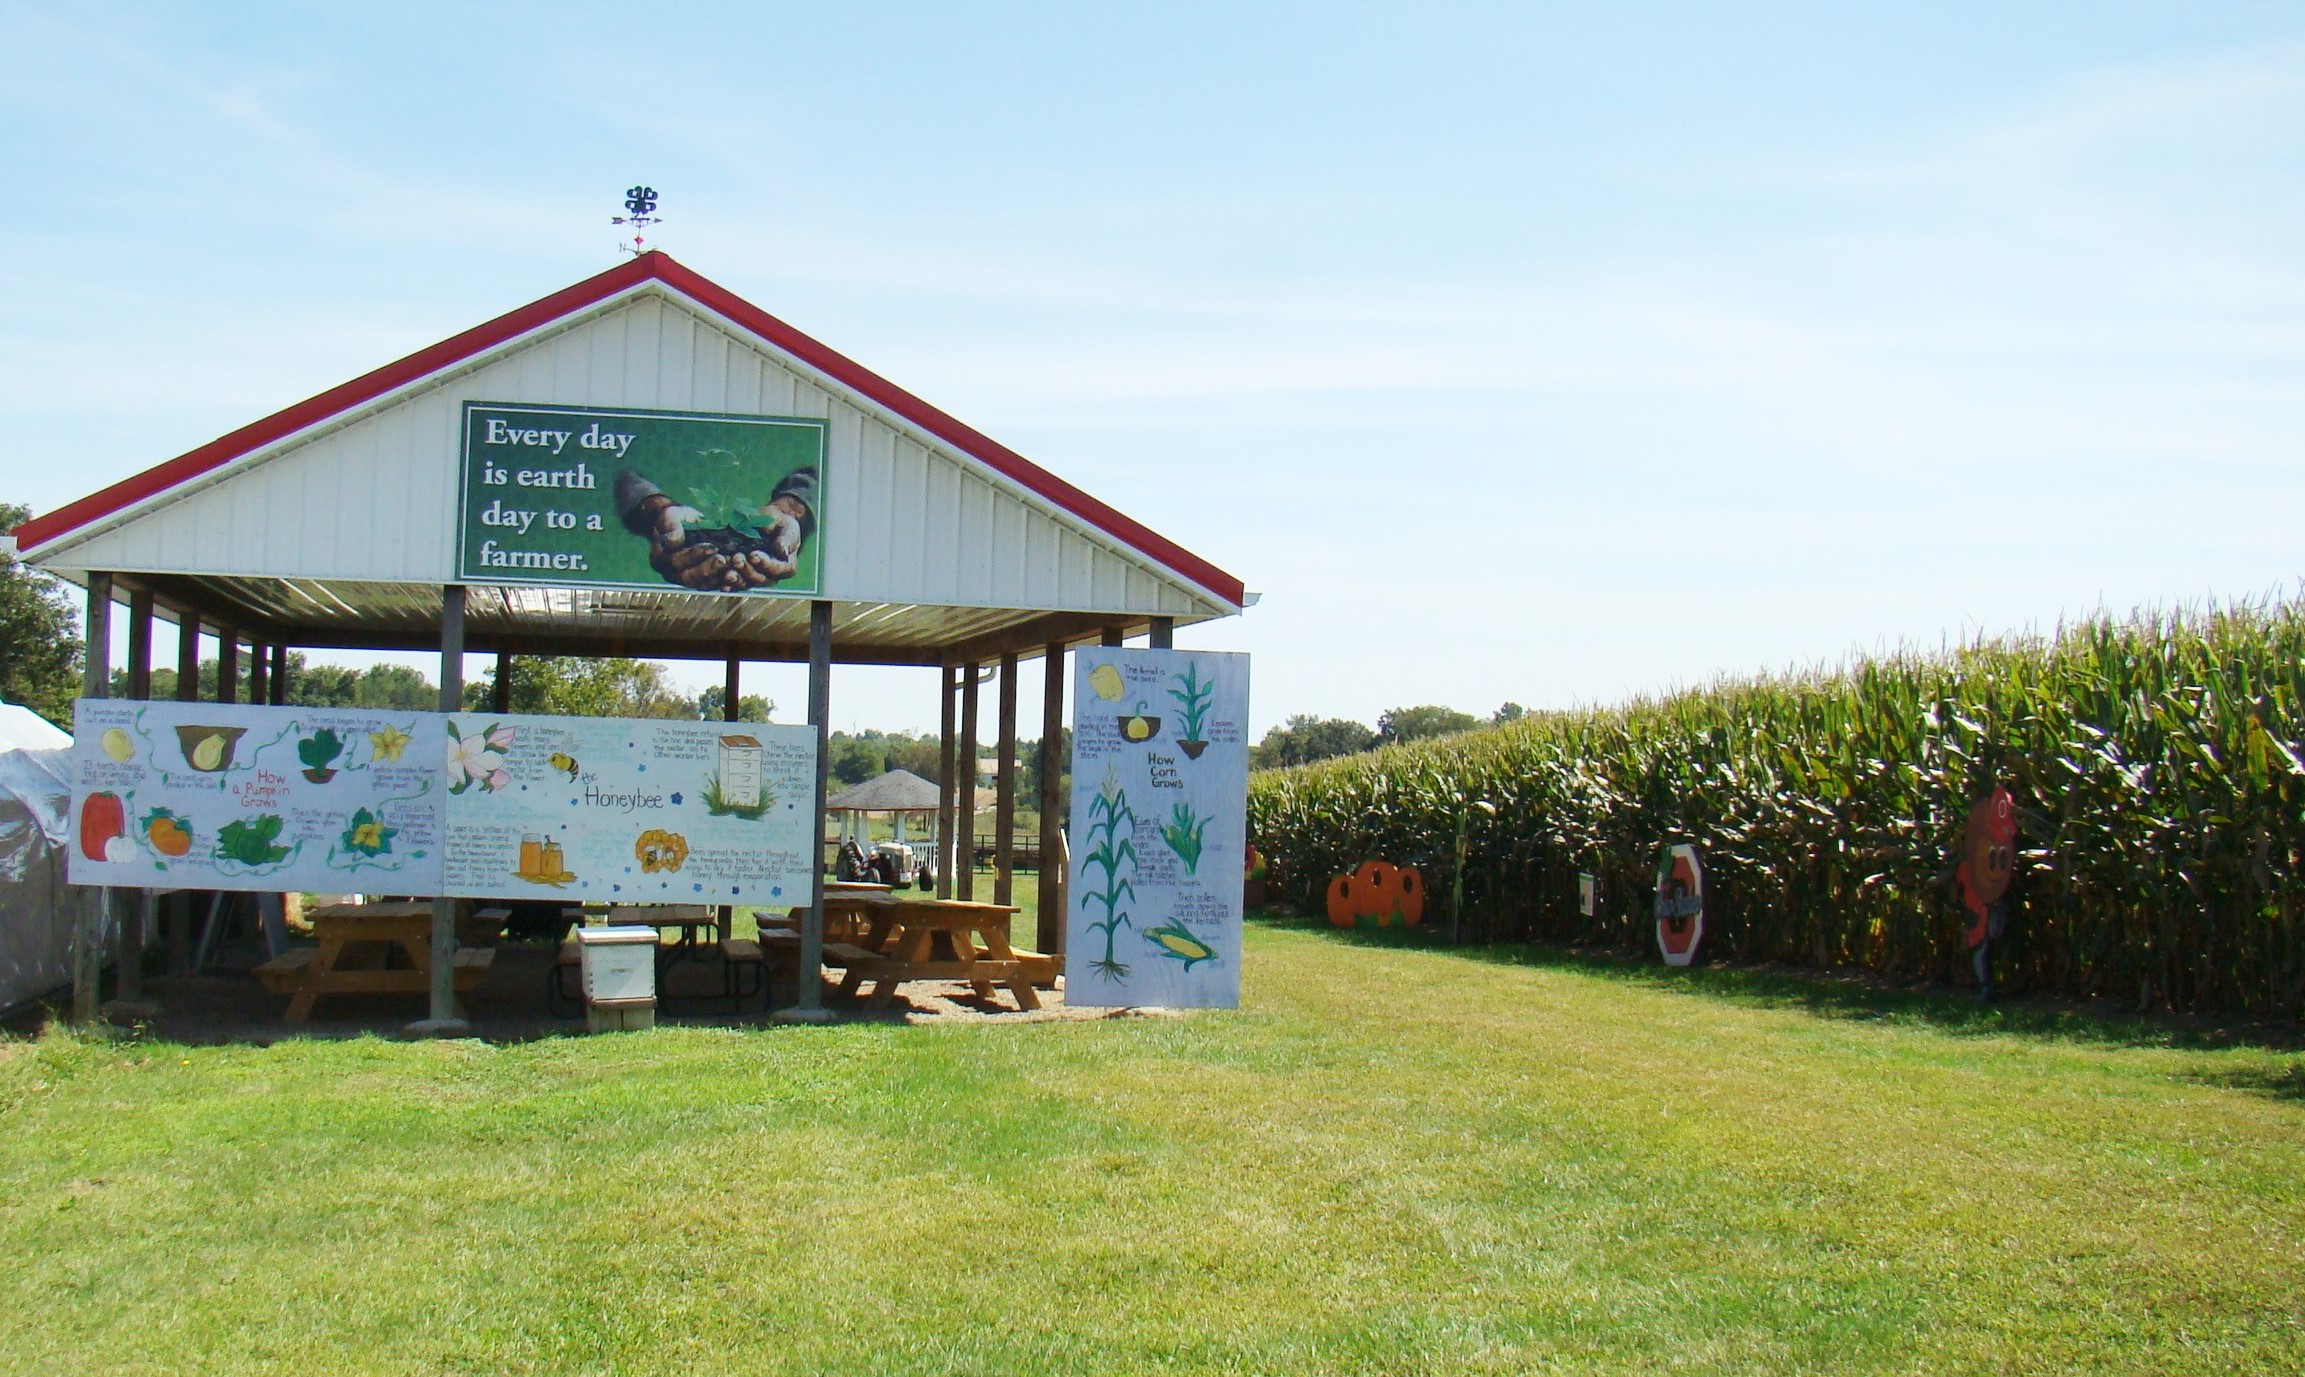 A play area along side the corn maze offers many possibilities to explore.